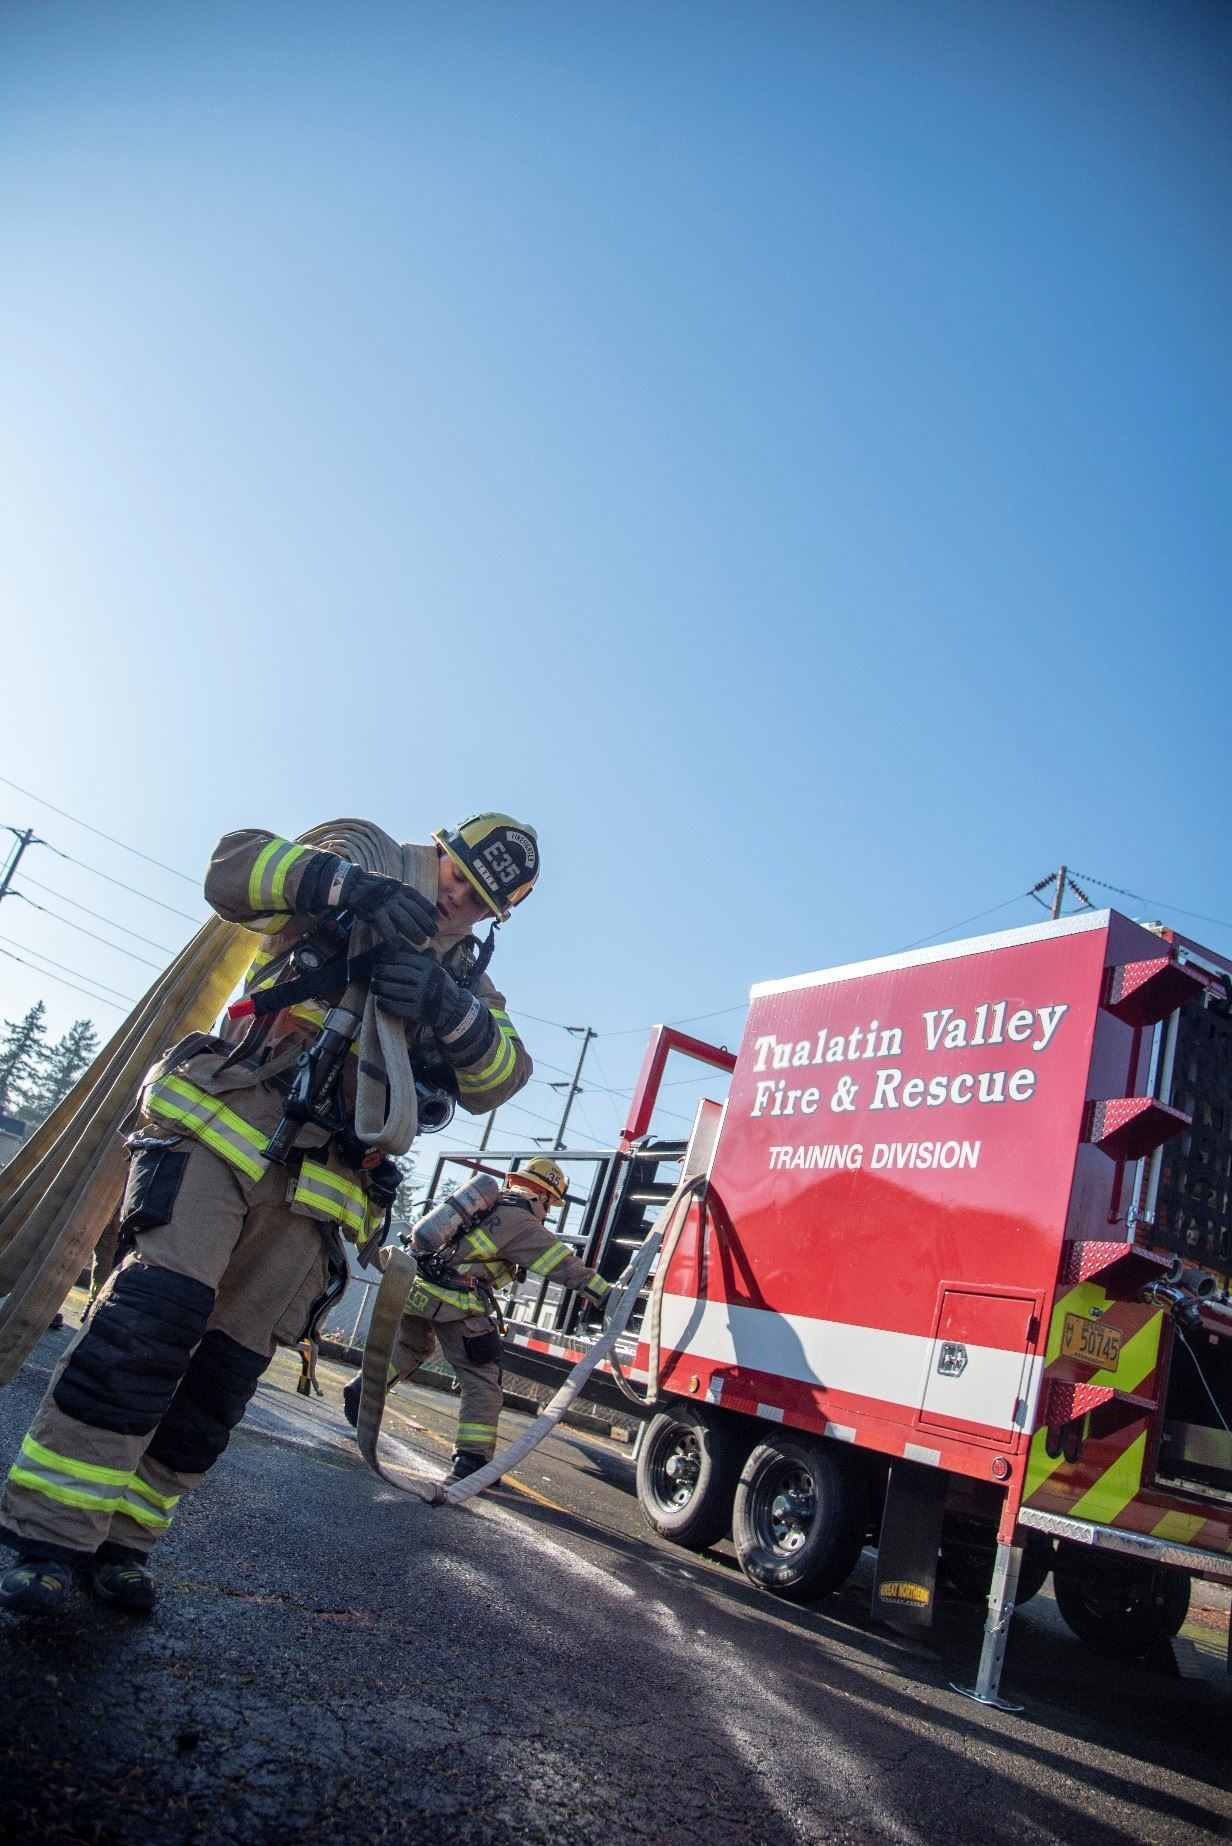 Crews complete hose drill with new training trailer